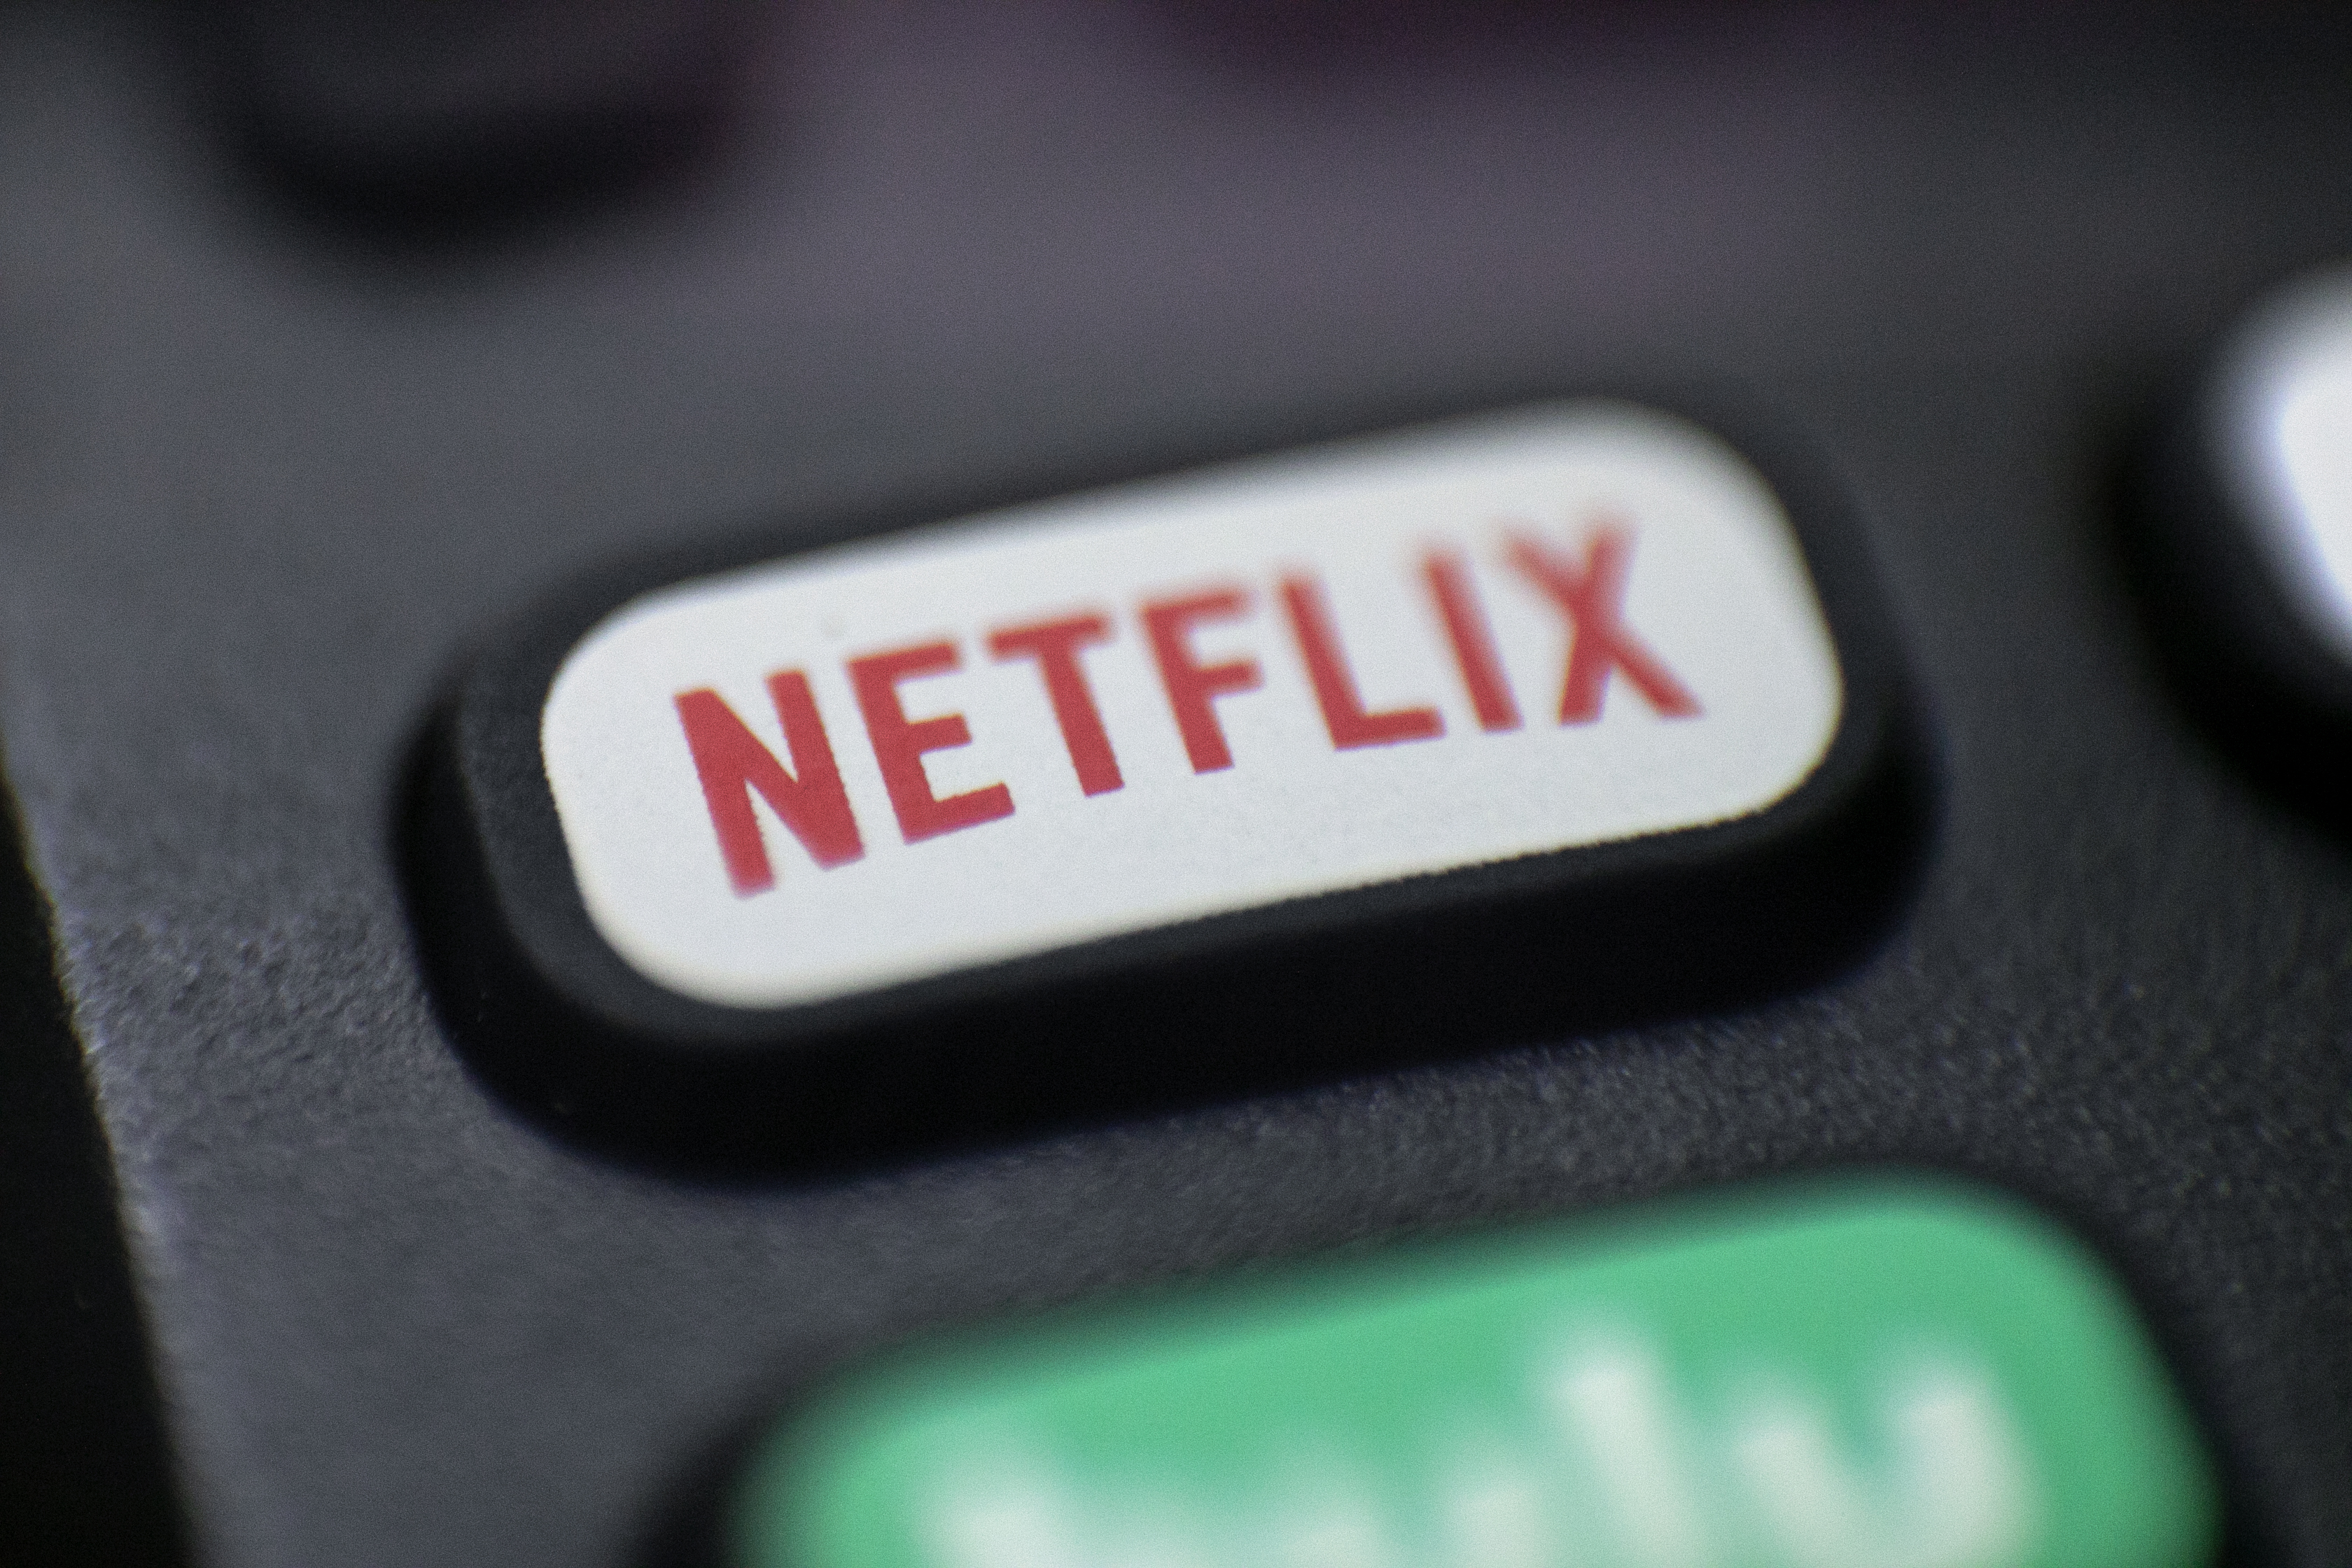 This Aug. 13, 2020, photo shows a logo for Netflix on a remote control in Portland, Ore.